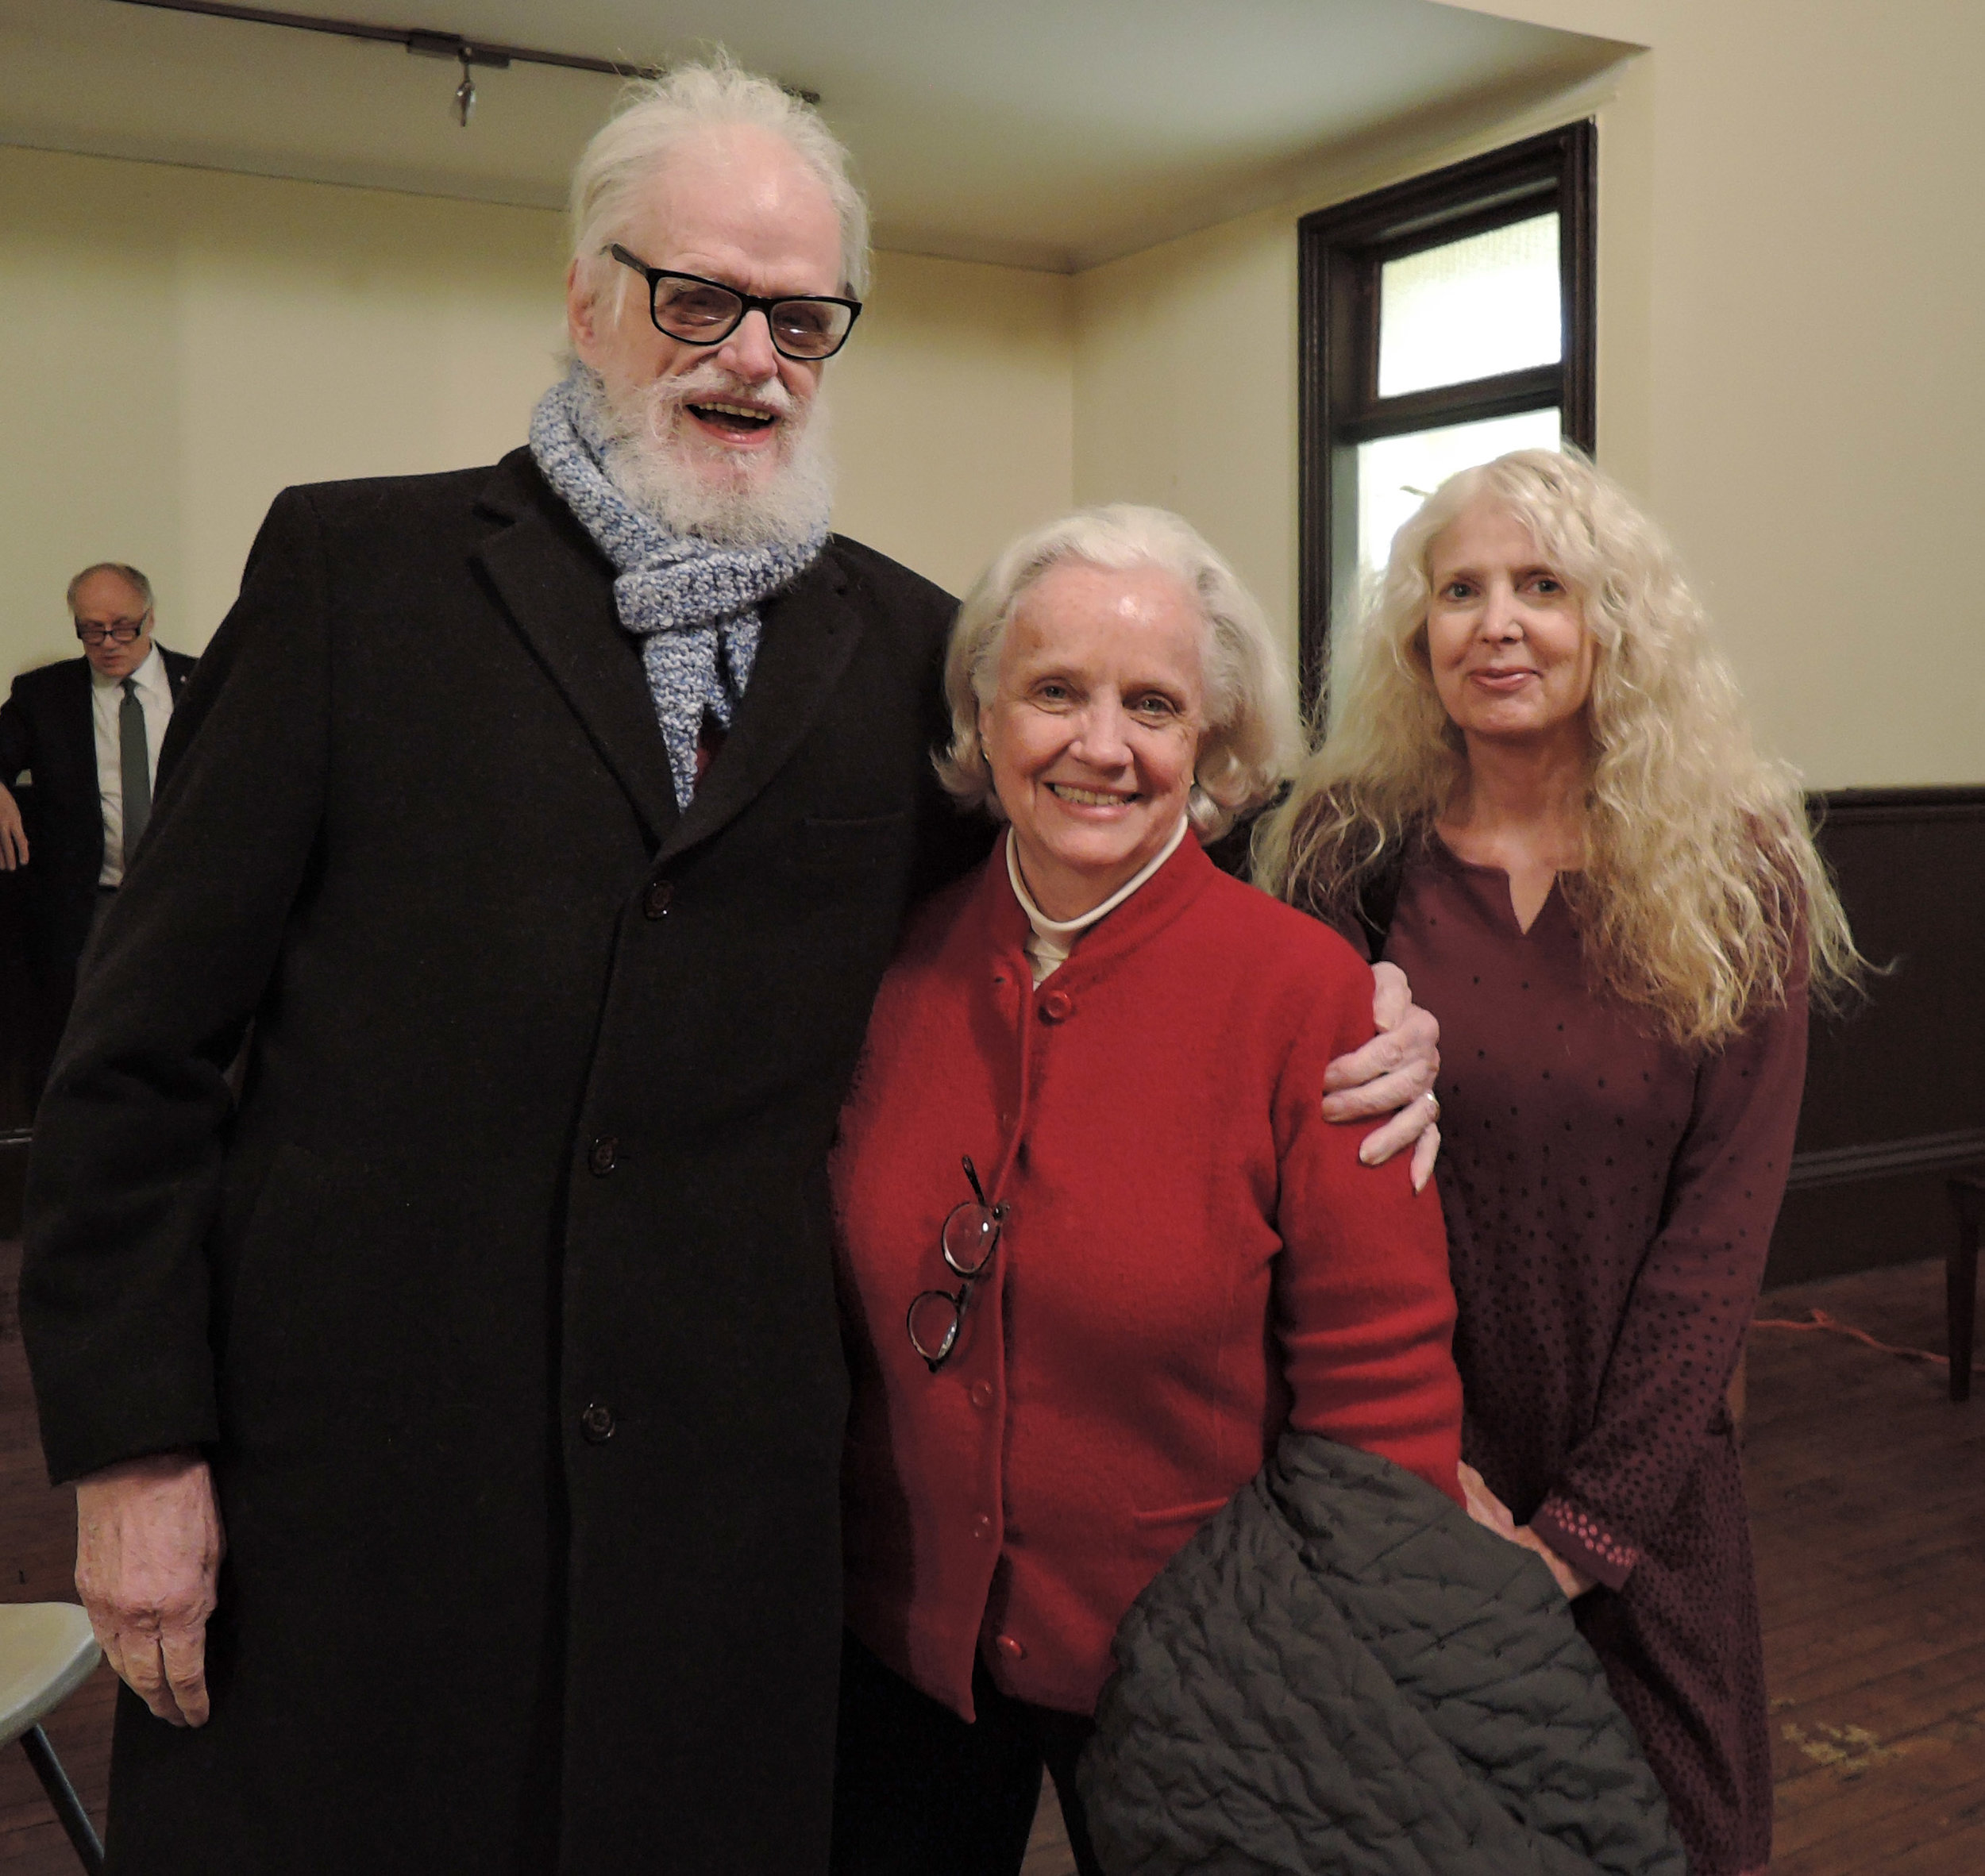 Parishioners Hardy Geer and Julie Gillis,   and a guest